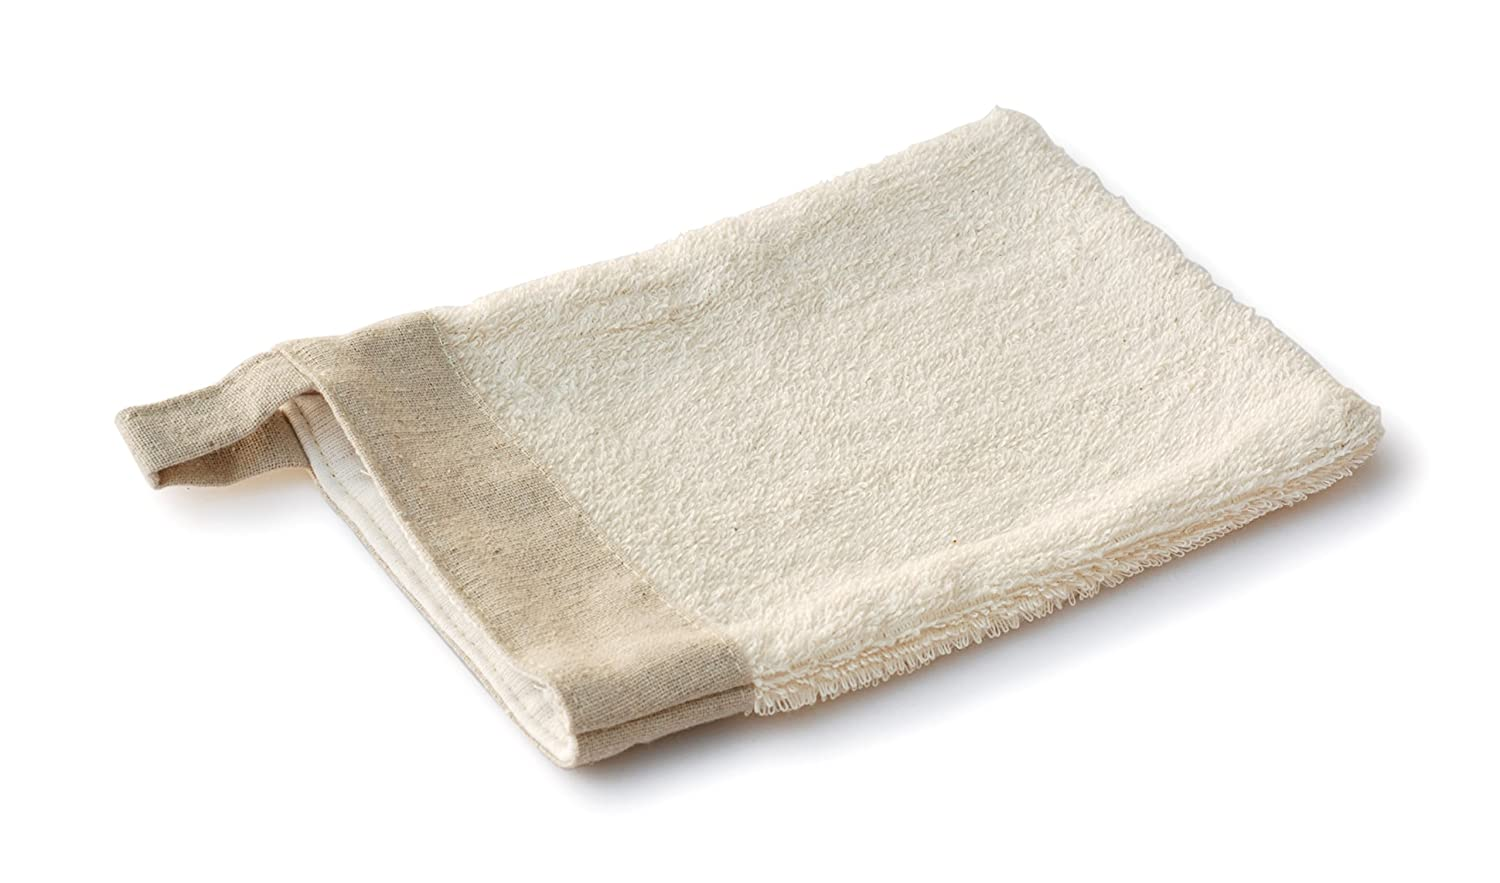 Basicare Sisal/Bamboo Towelling Double-Sided Bath Mitt, 14 x 21 cm Influx 2741